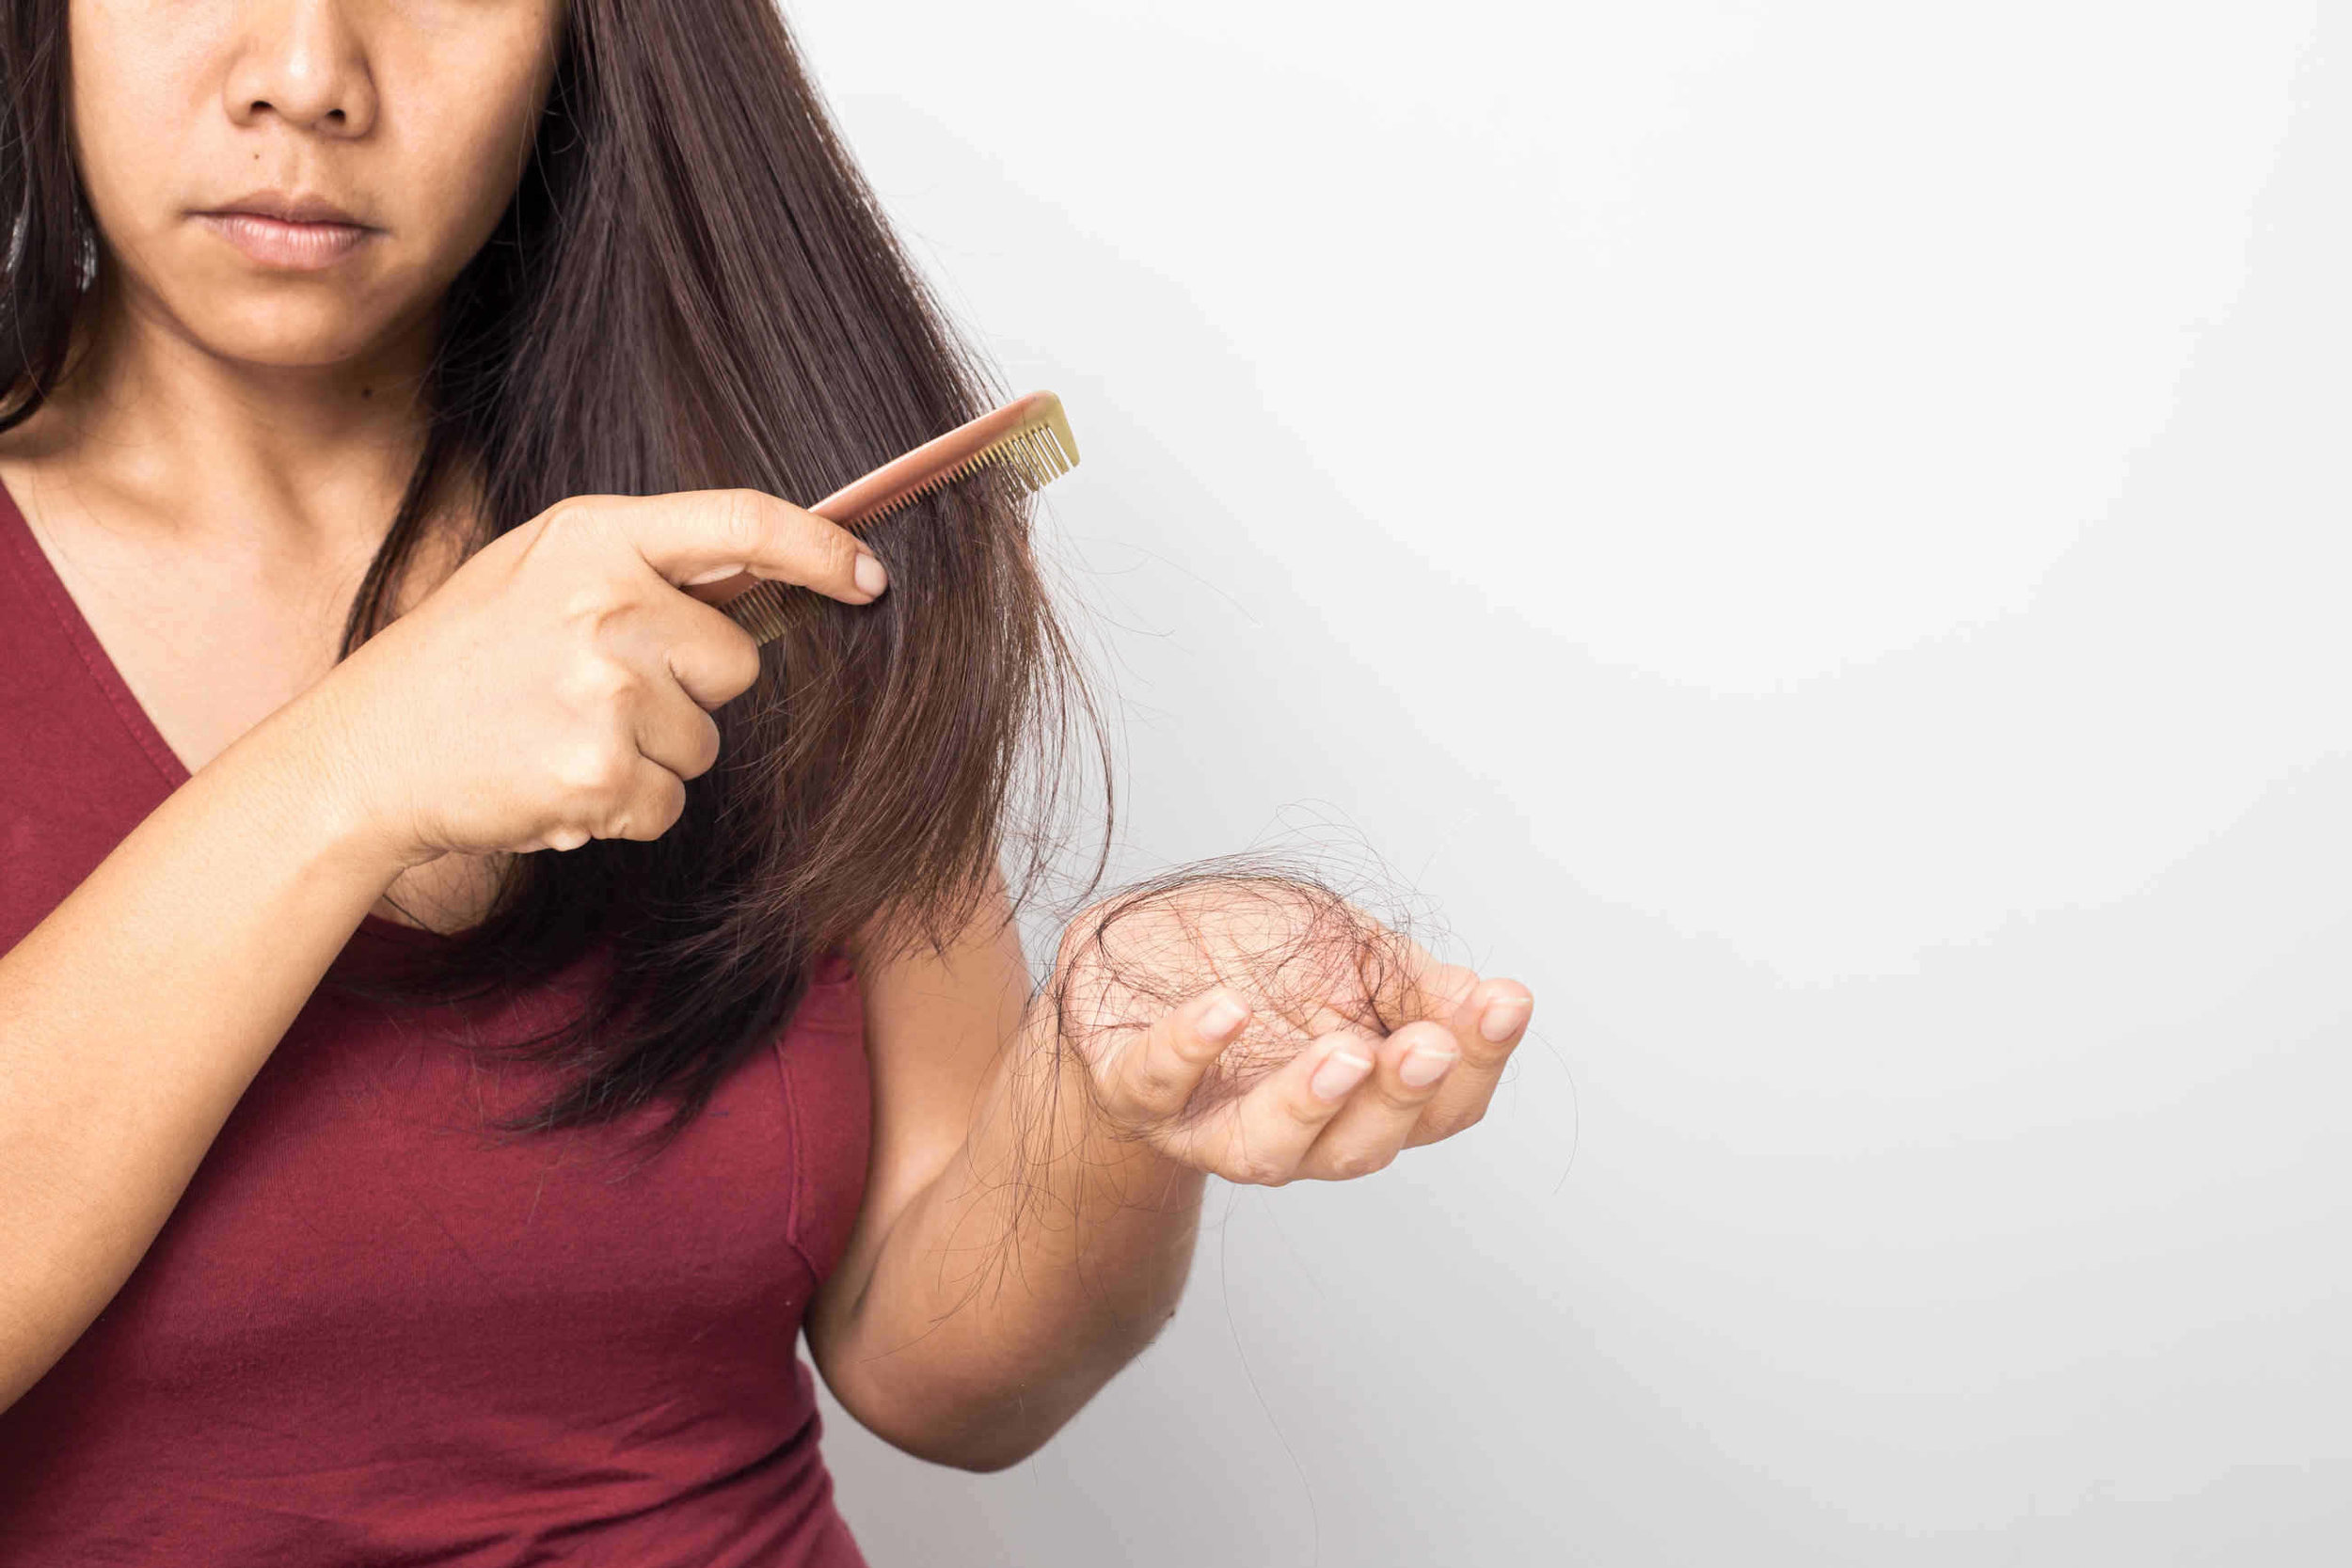 80 Million Americans - suffer from hair loss according to the American Academy of Dermatology.